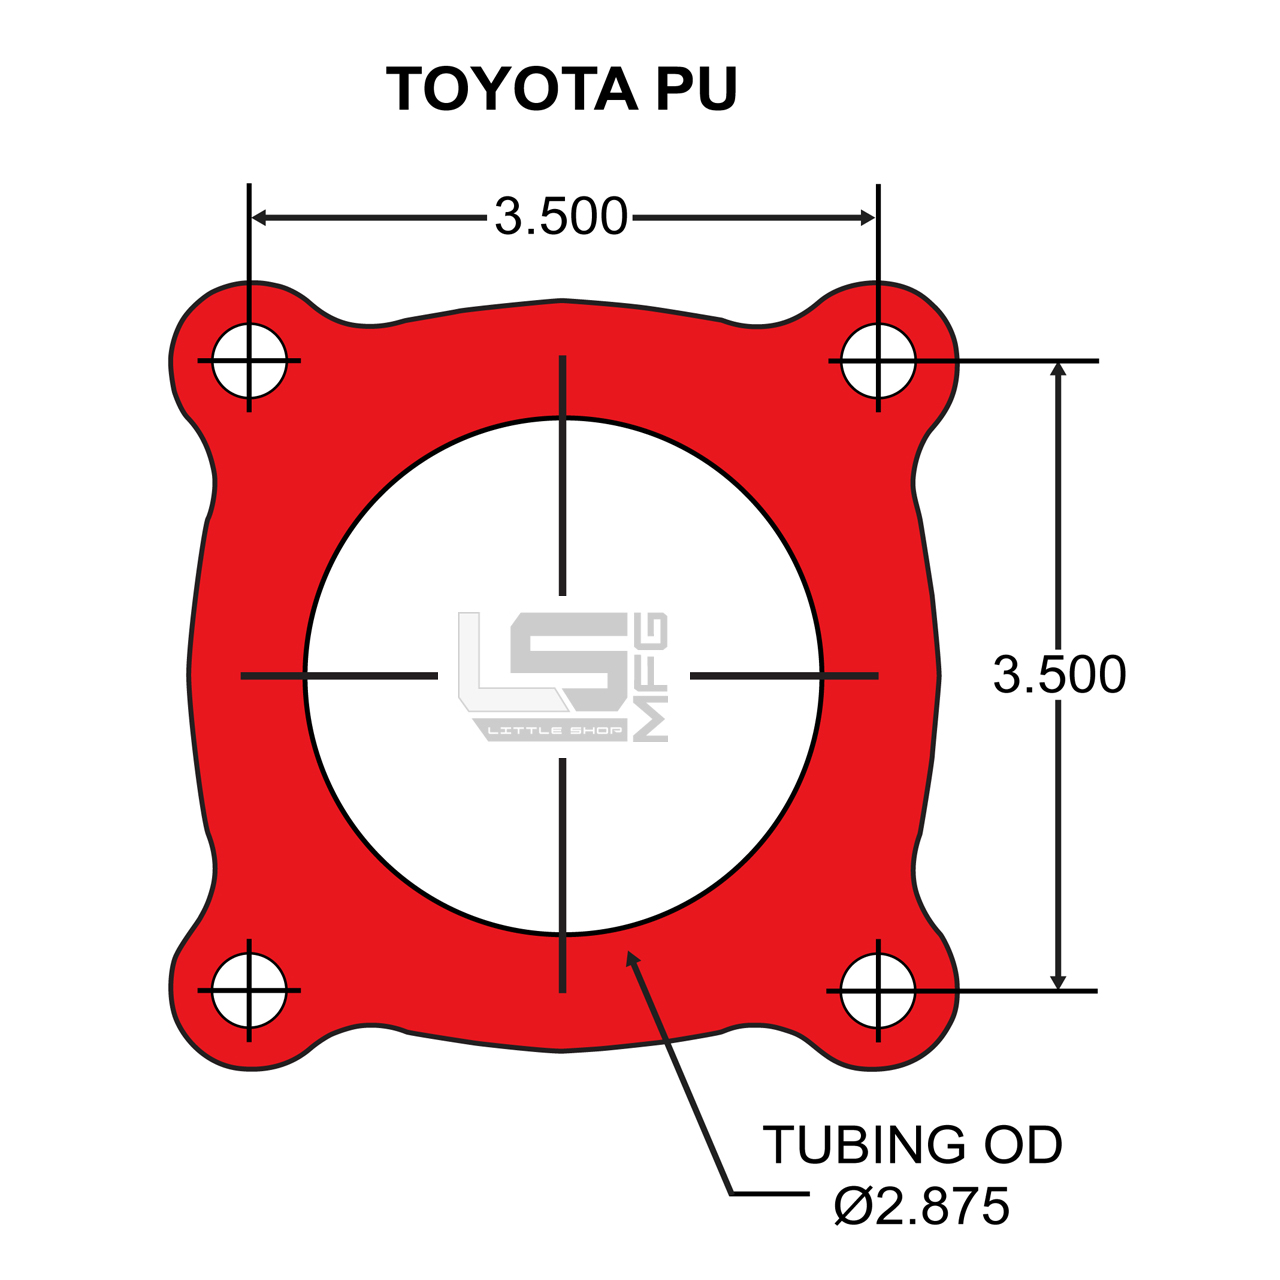 2007 Toyota Tacoma Rear Axle Diagram Trusted Wiring For Tundra Of 2006